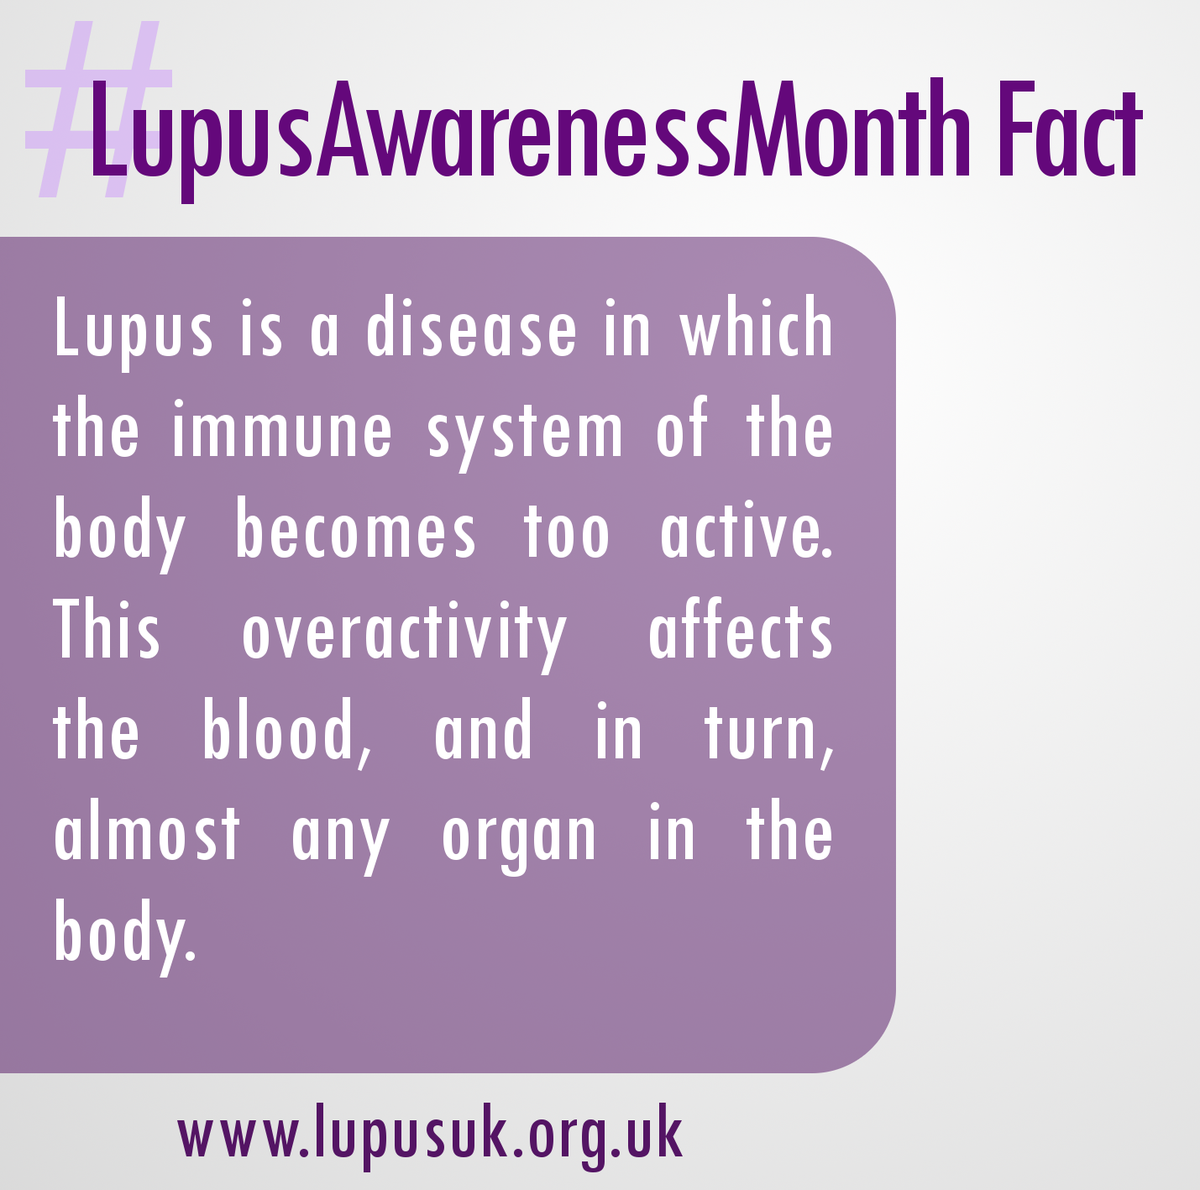 It's #LupusAwarenessMonth We'll be sharing facts through October for you to RT Learn more at http://t.co/XhLZbU4c8p http://t.co/Gryste85uX